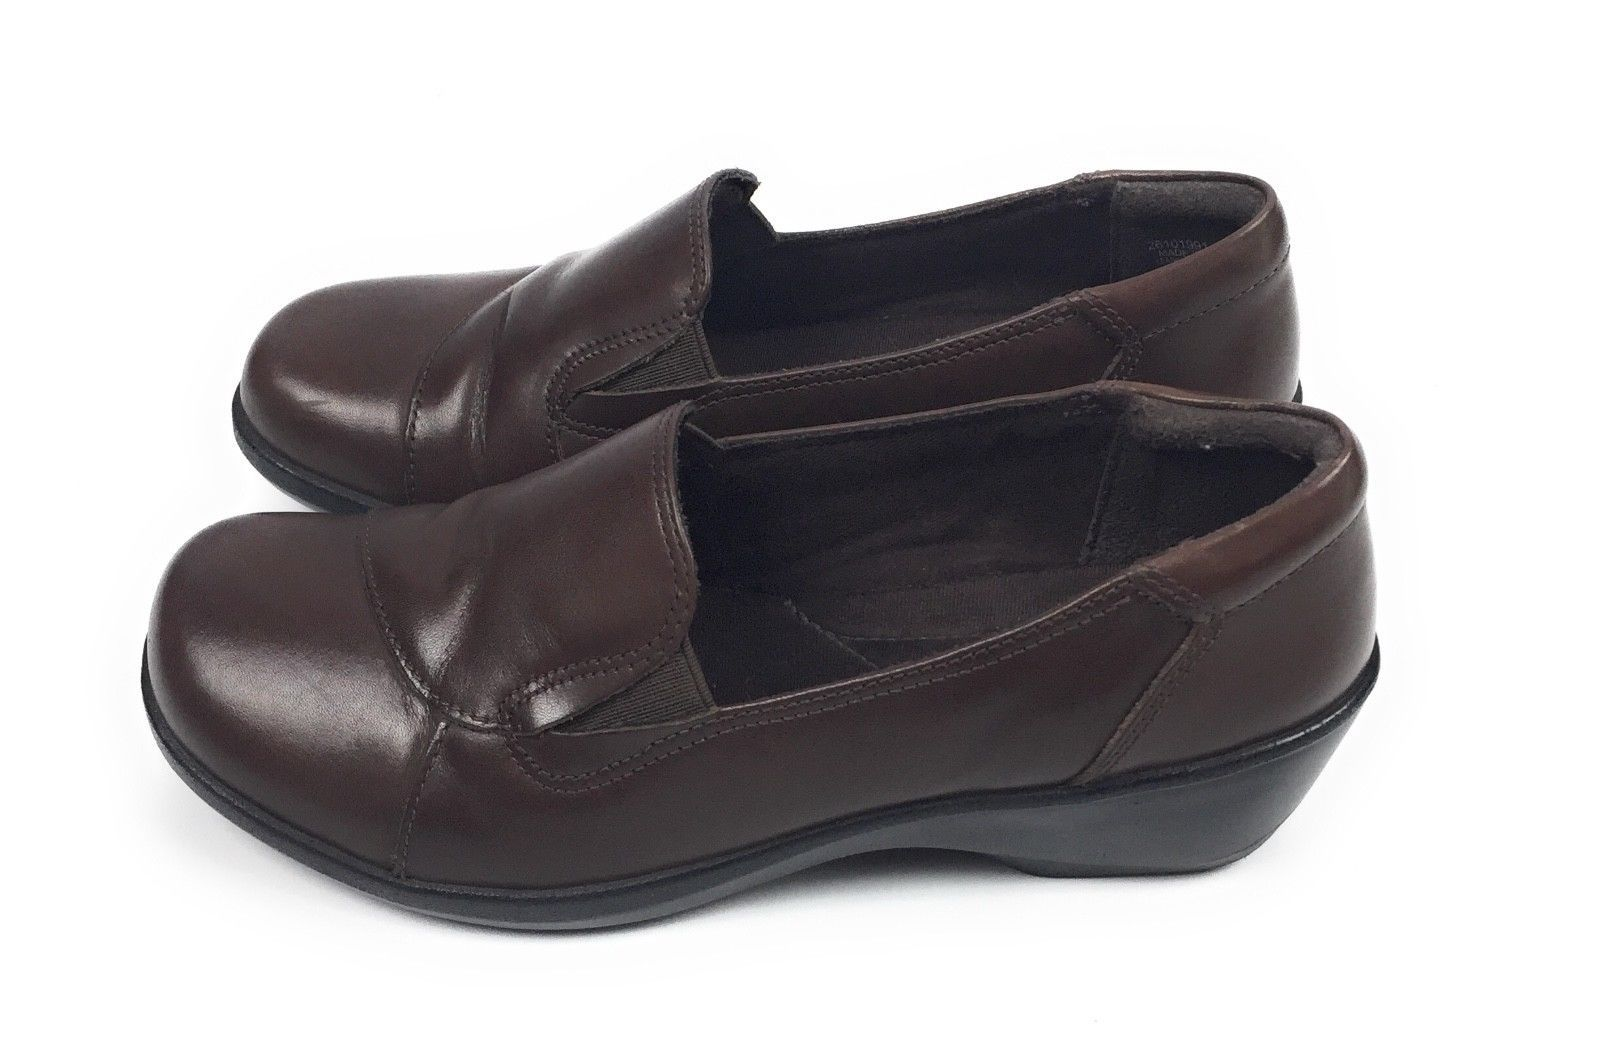 Clarks Esha Haven #26101991 Leather Comfort Slip On Shoes Brown Women's 7.5M US